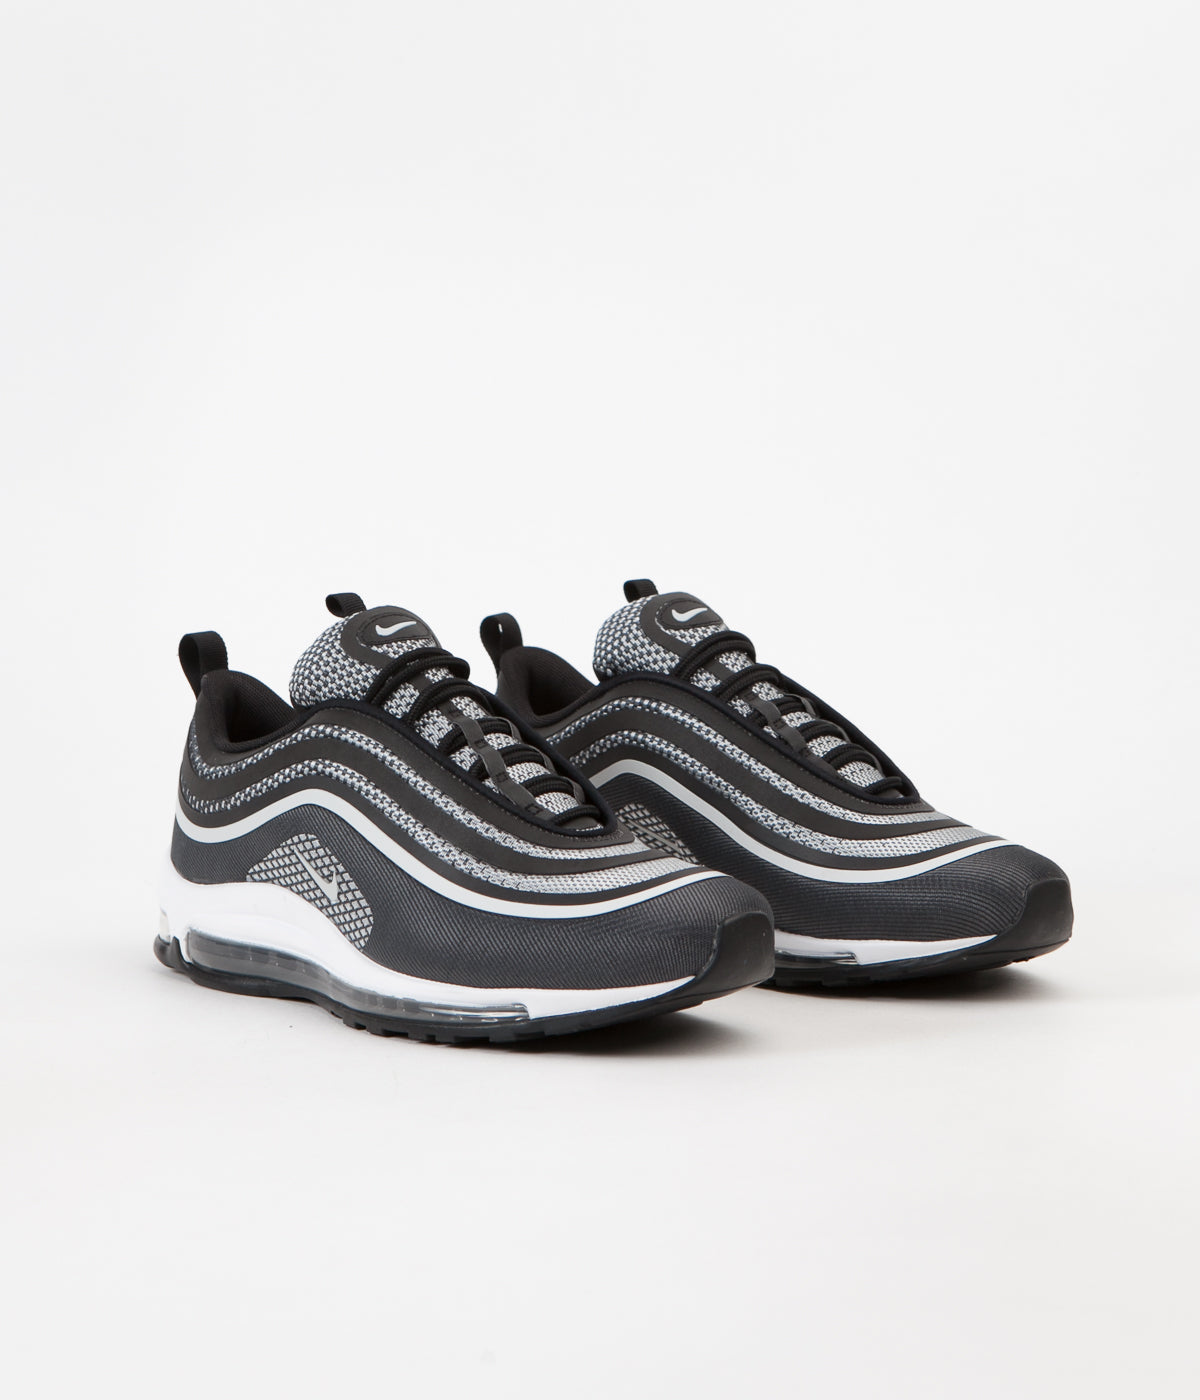 b77396afc8 ... Nike Air Max 97 Ultra '17 Shoes - Black / Pure Platinum - Anthracite ...